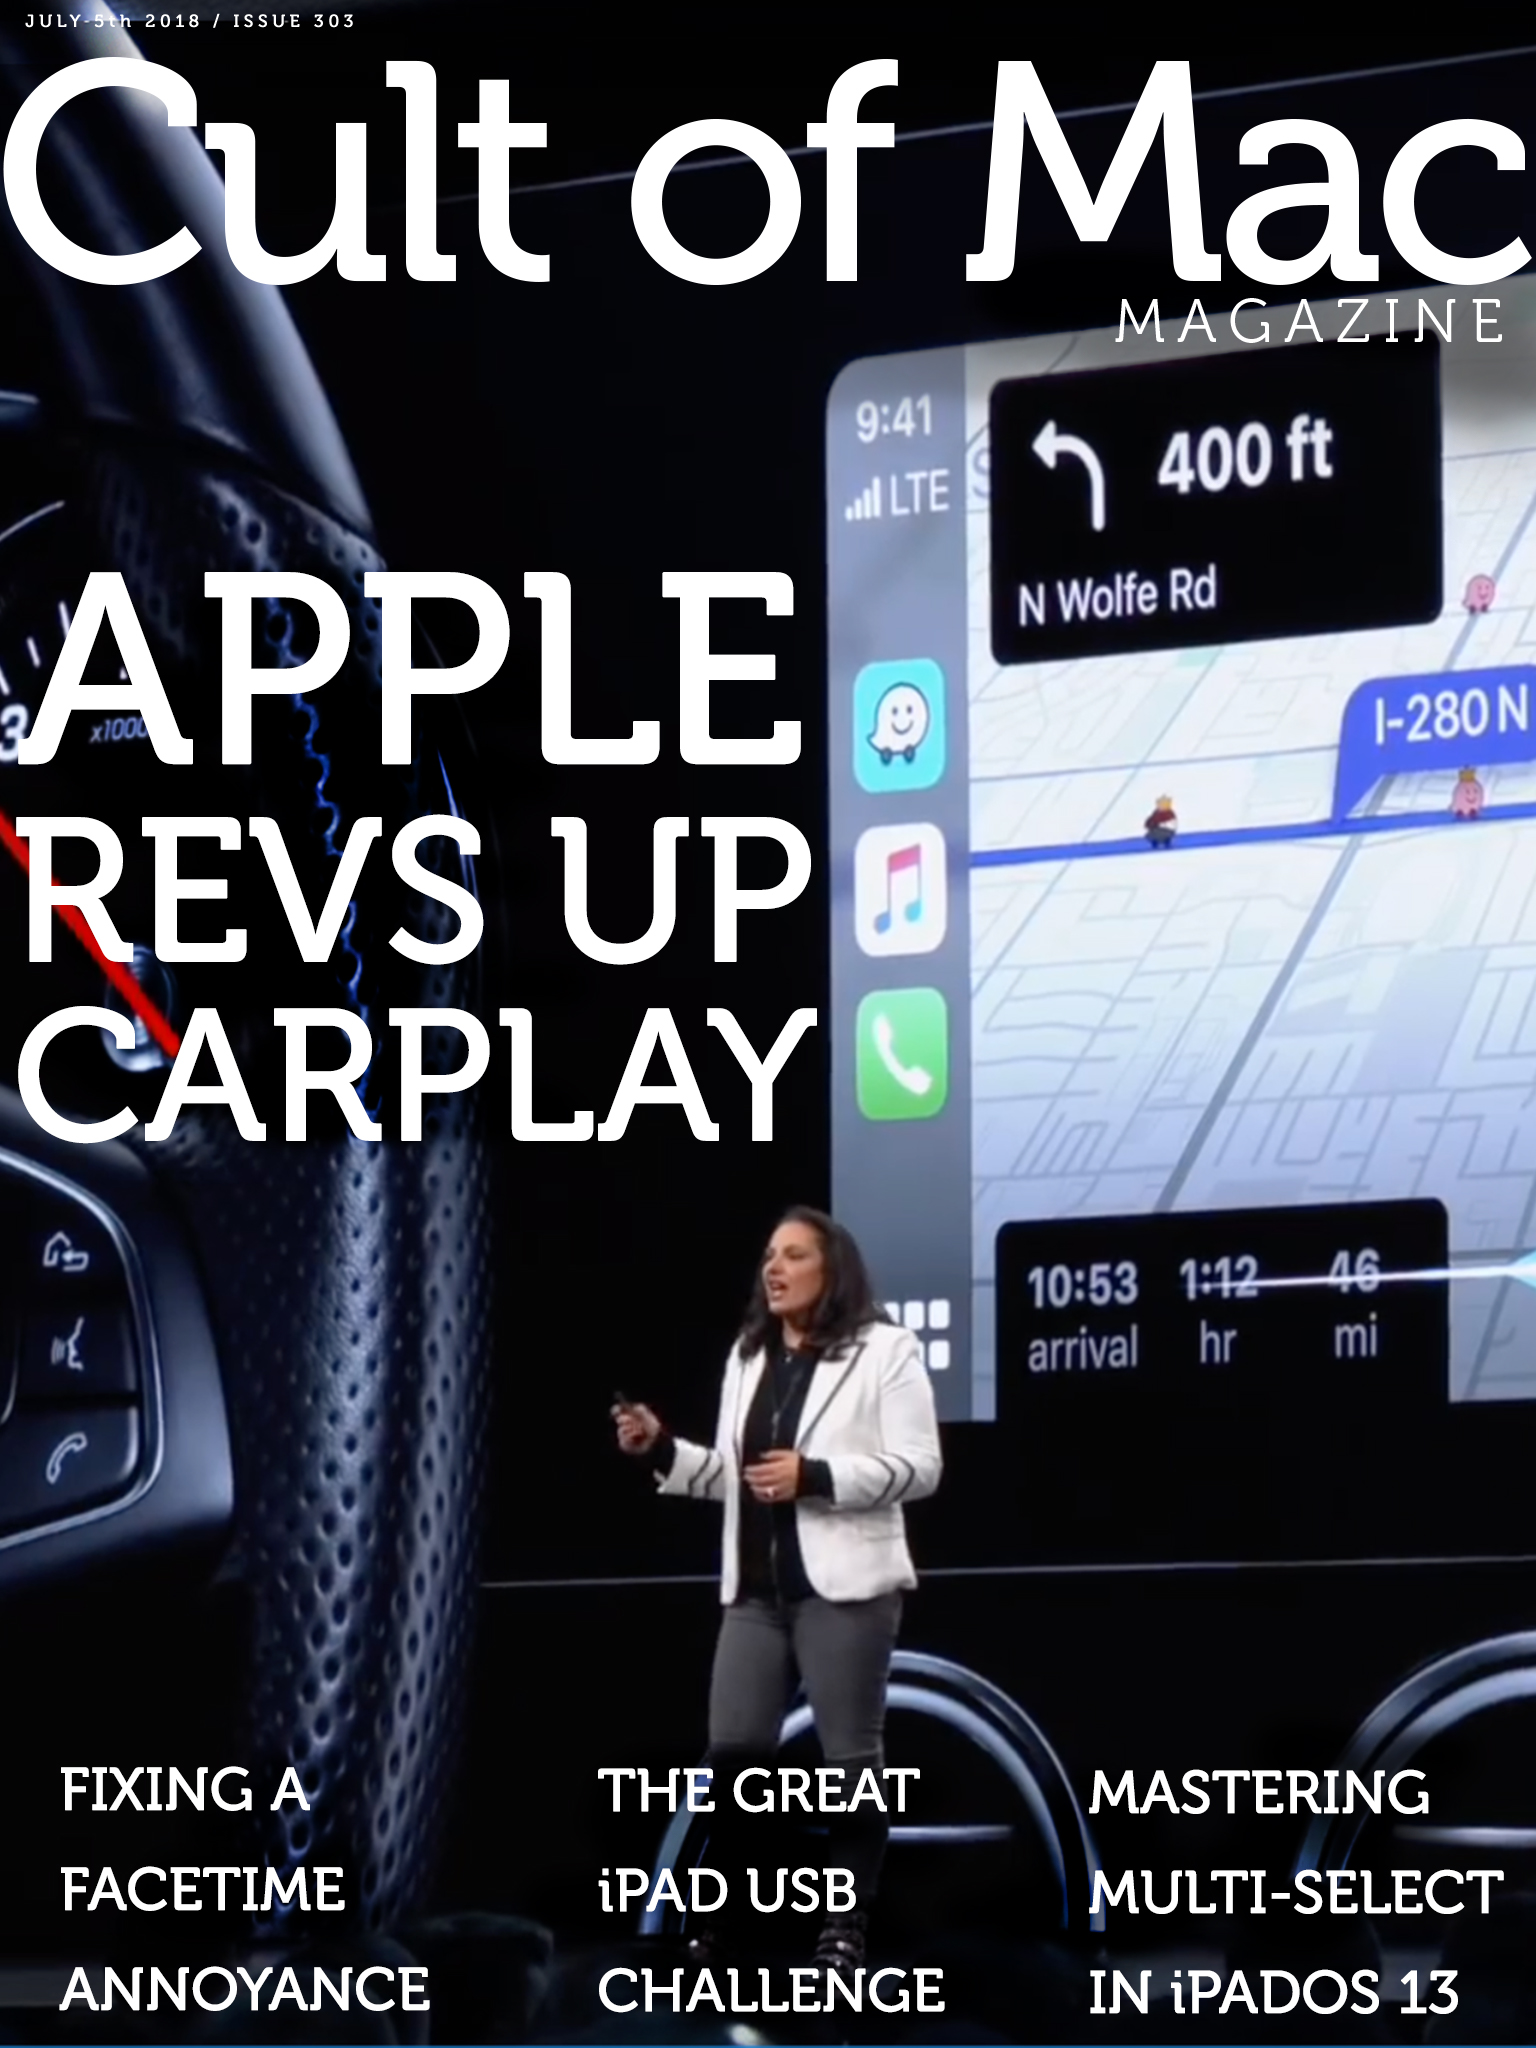 Apple revs up CarPlay - Cult of Mac Magazine